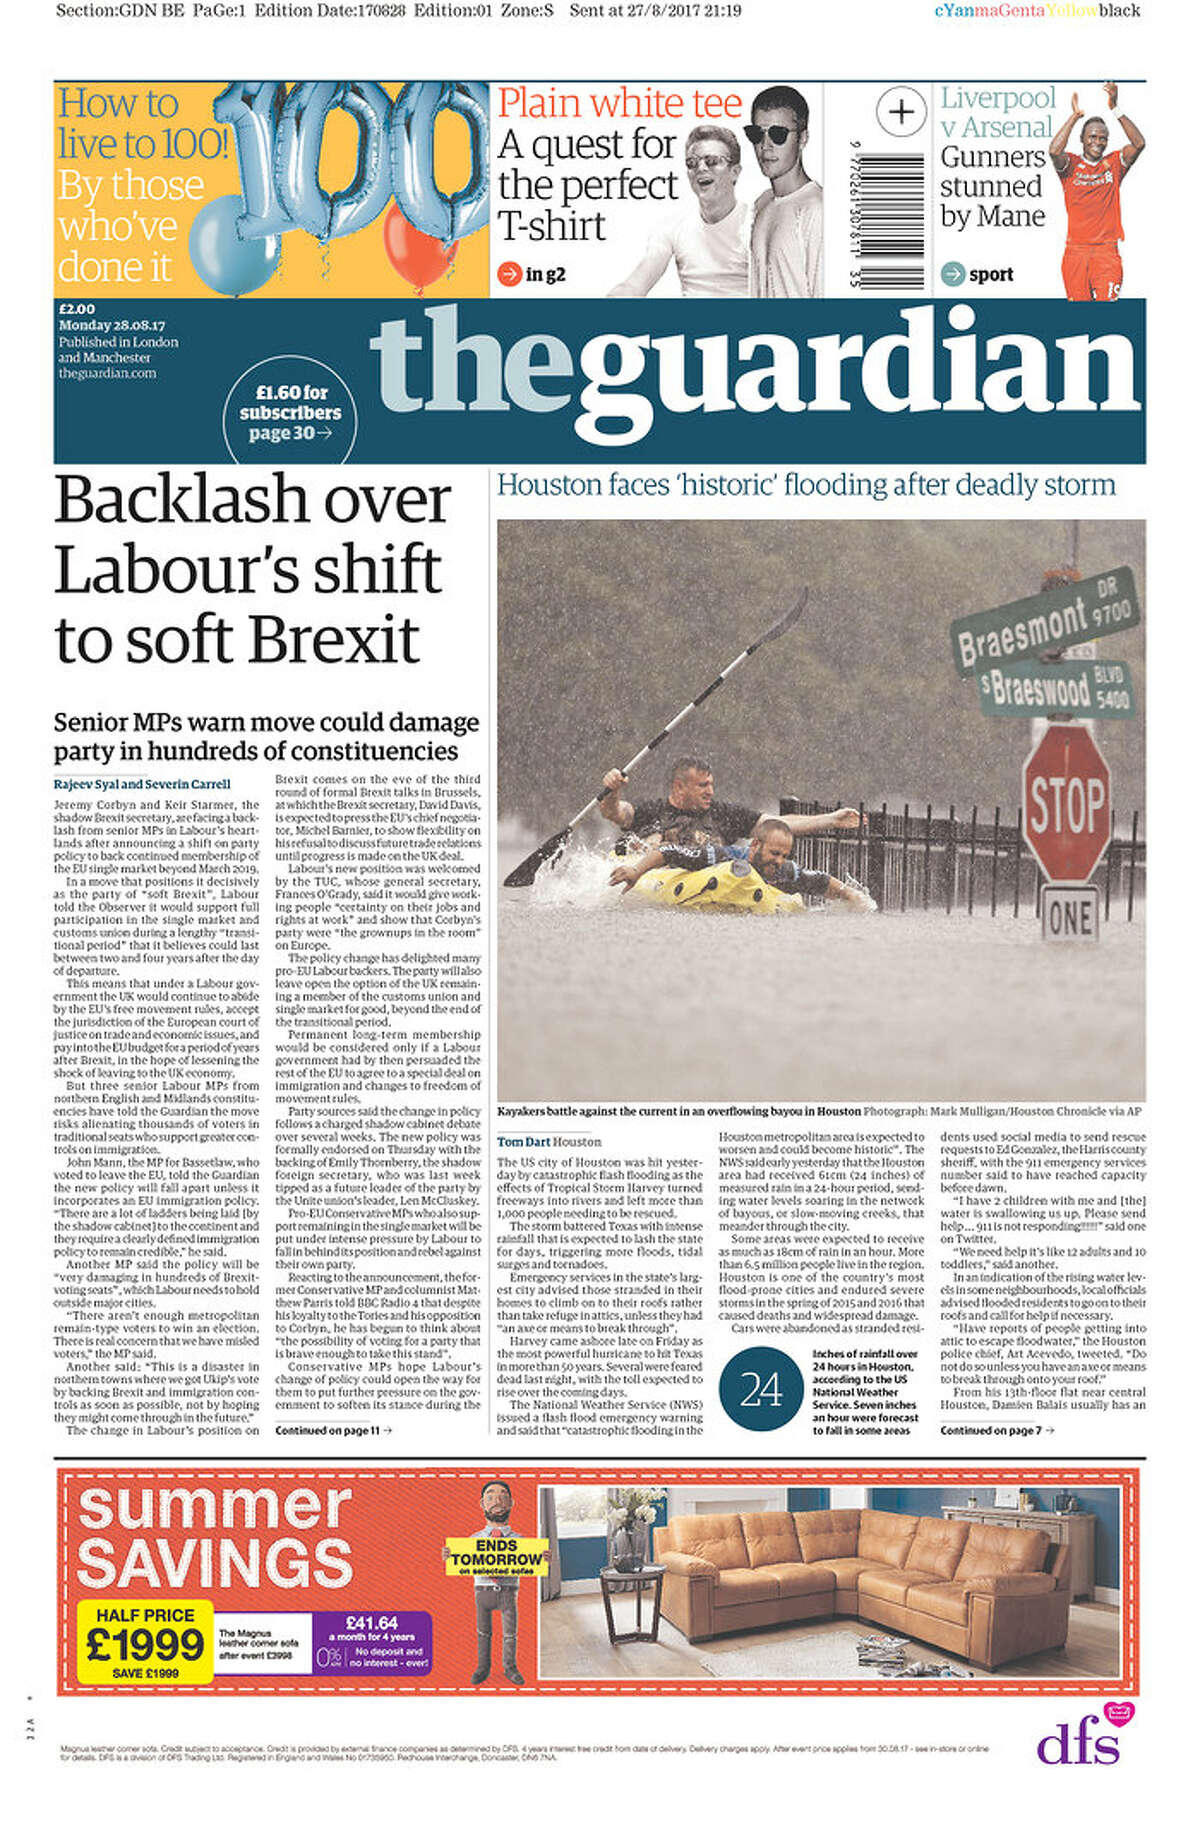 The Guardian: London, UK Front pages from Texas and beyond for Monday, Aug. 28, 2017, show how newspapers covered the catastrophic floods in Houston due to Tropical Storm Harvey.